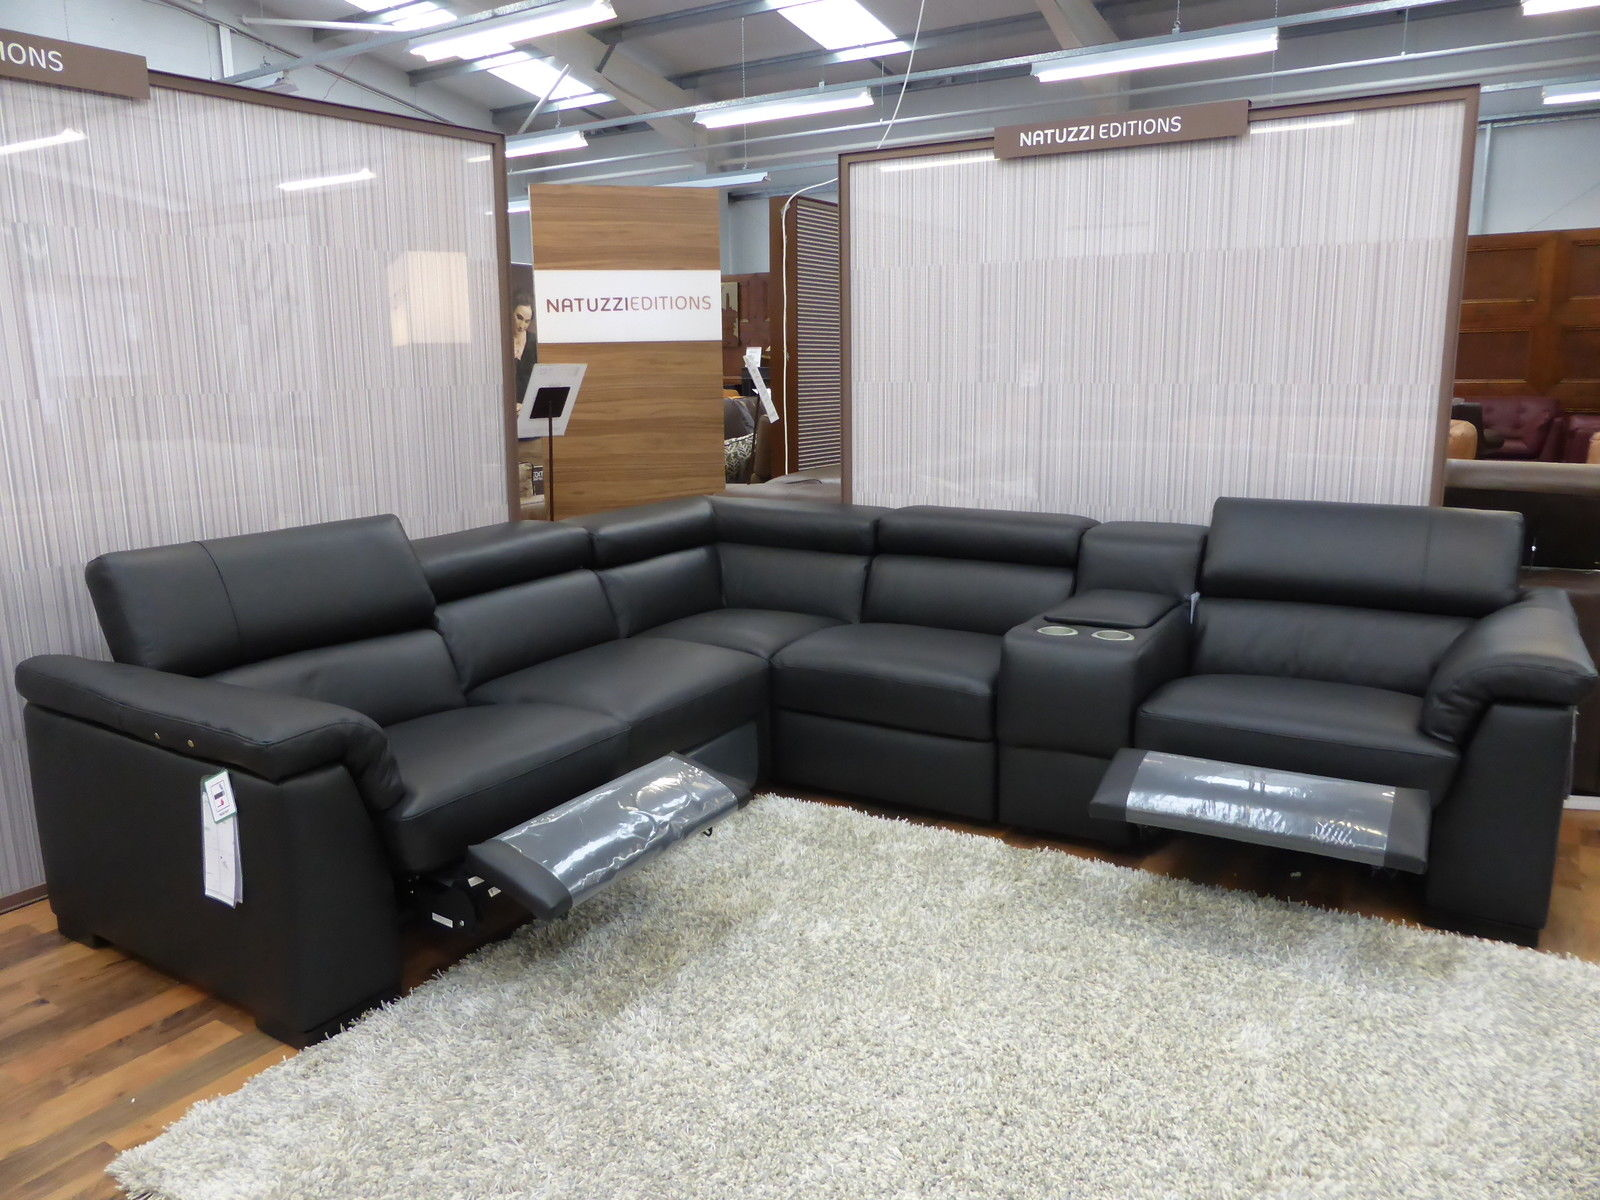 Natuzzi editions encore electric reclining leather cinema for Sofas natuzzi outlet madrid